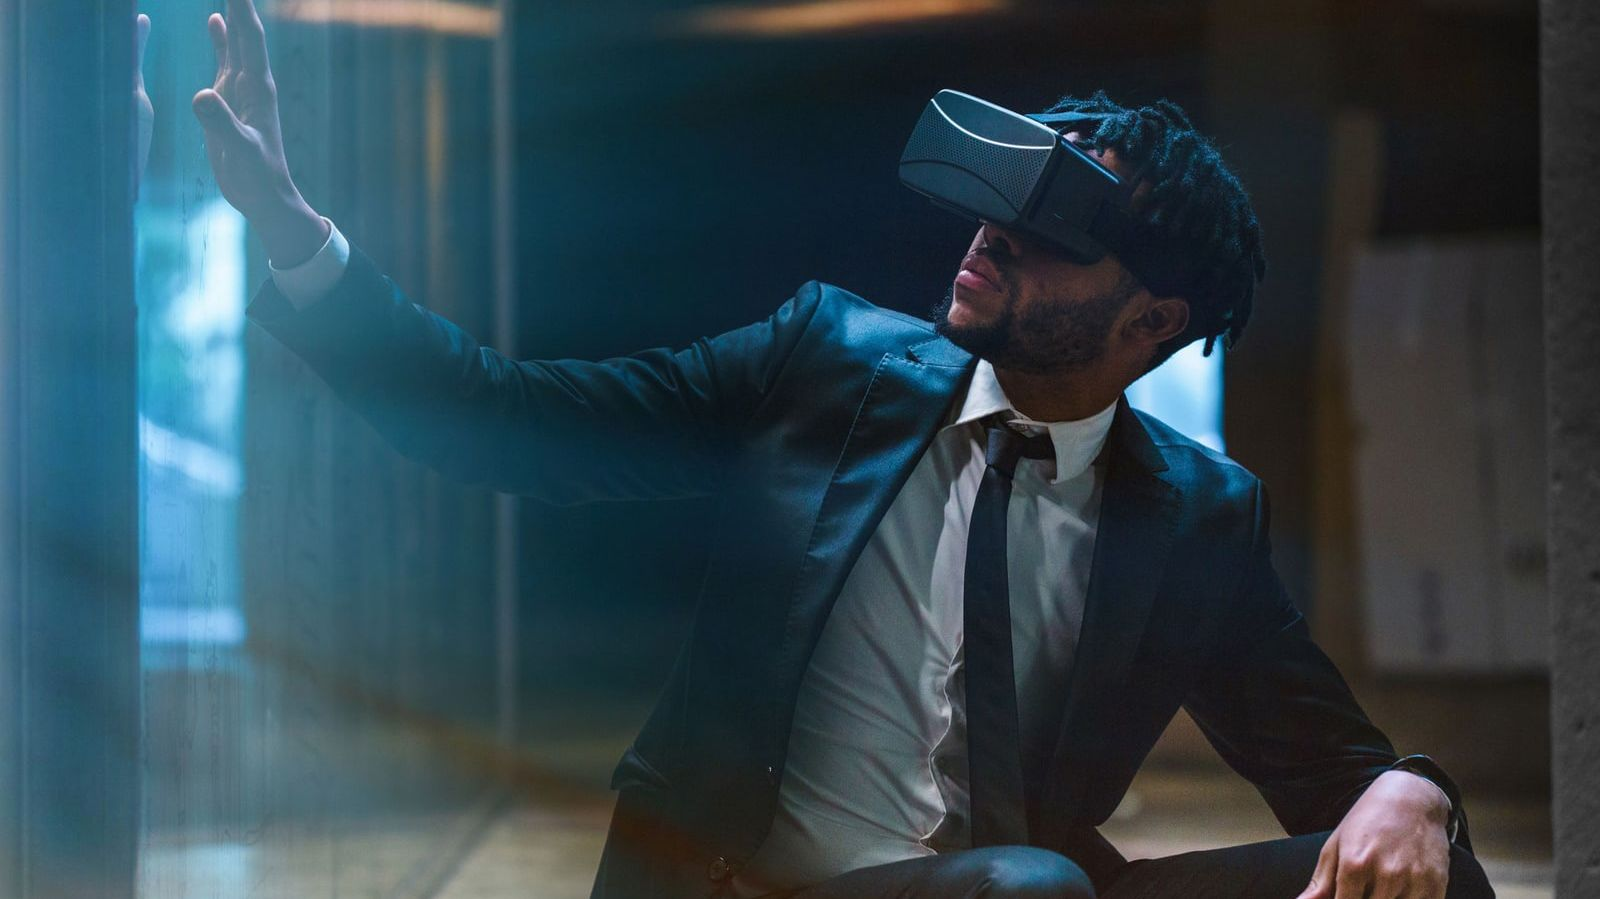 Image shows a man in a suit wearing a VR headset.